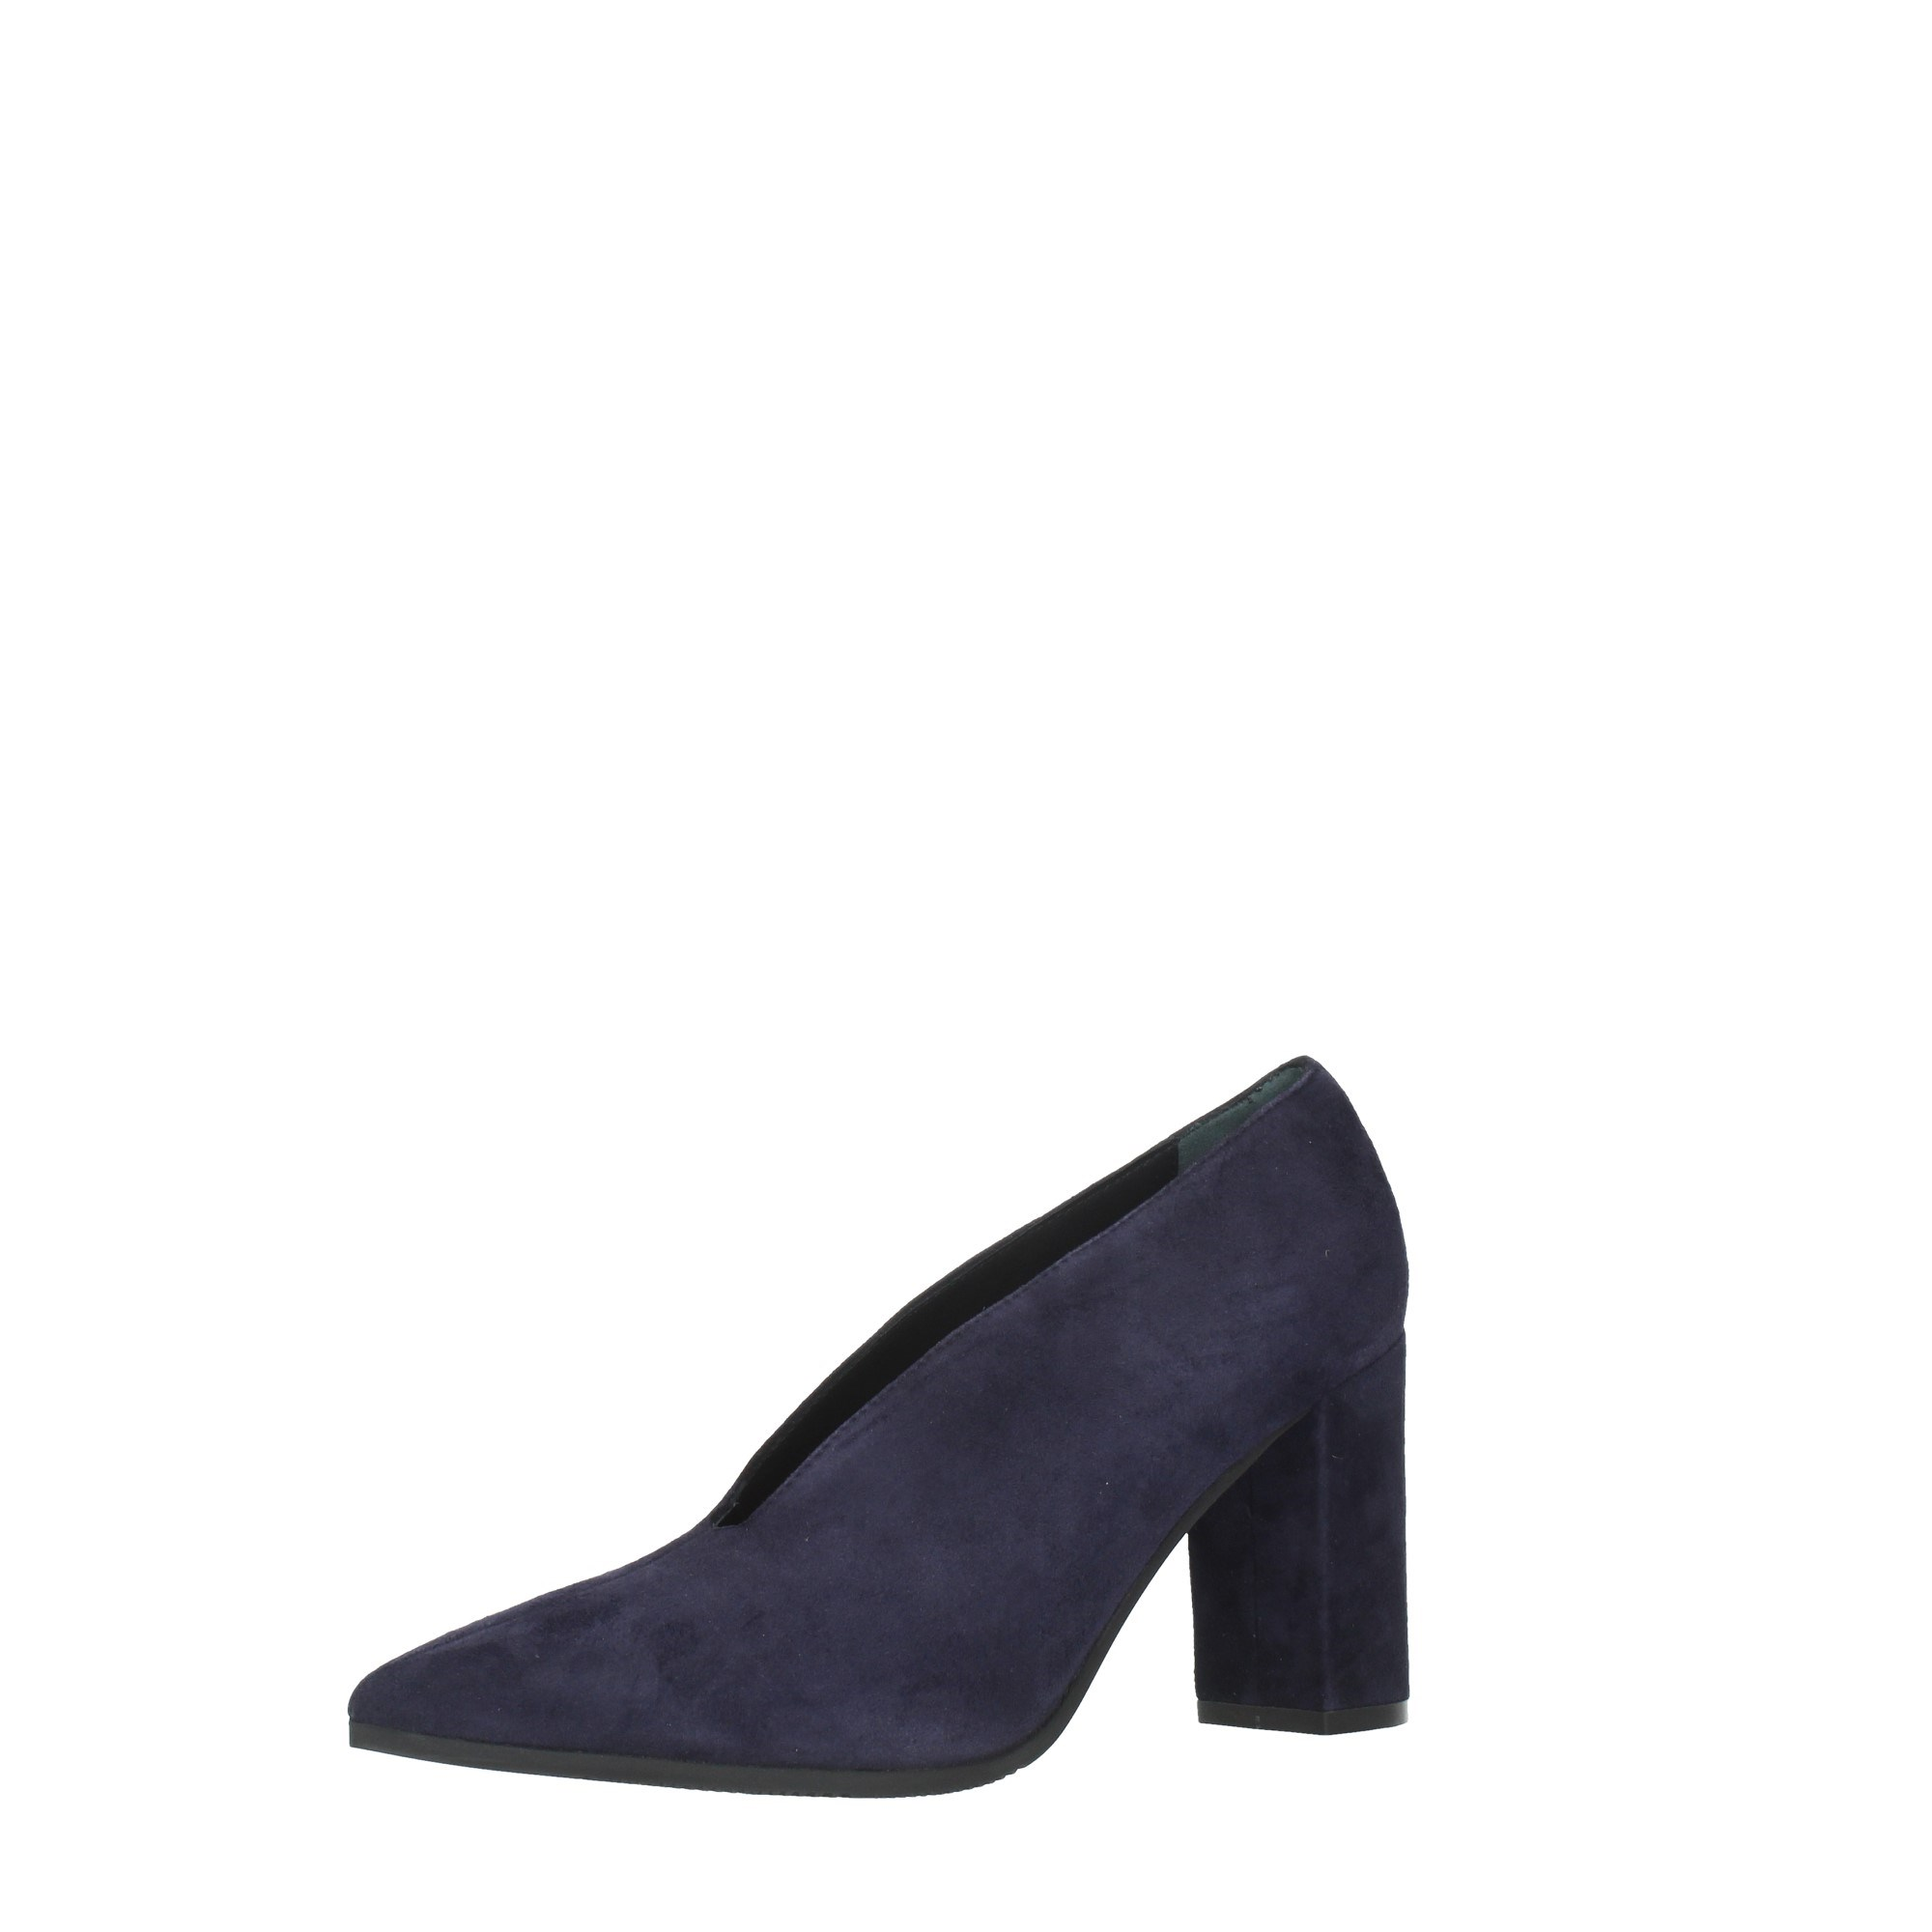 Evaluna Shoes Women Classic Shoes Blue 1618